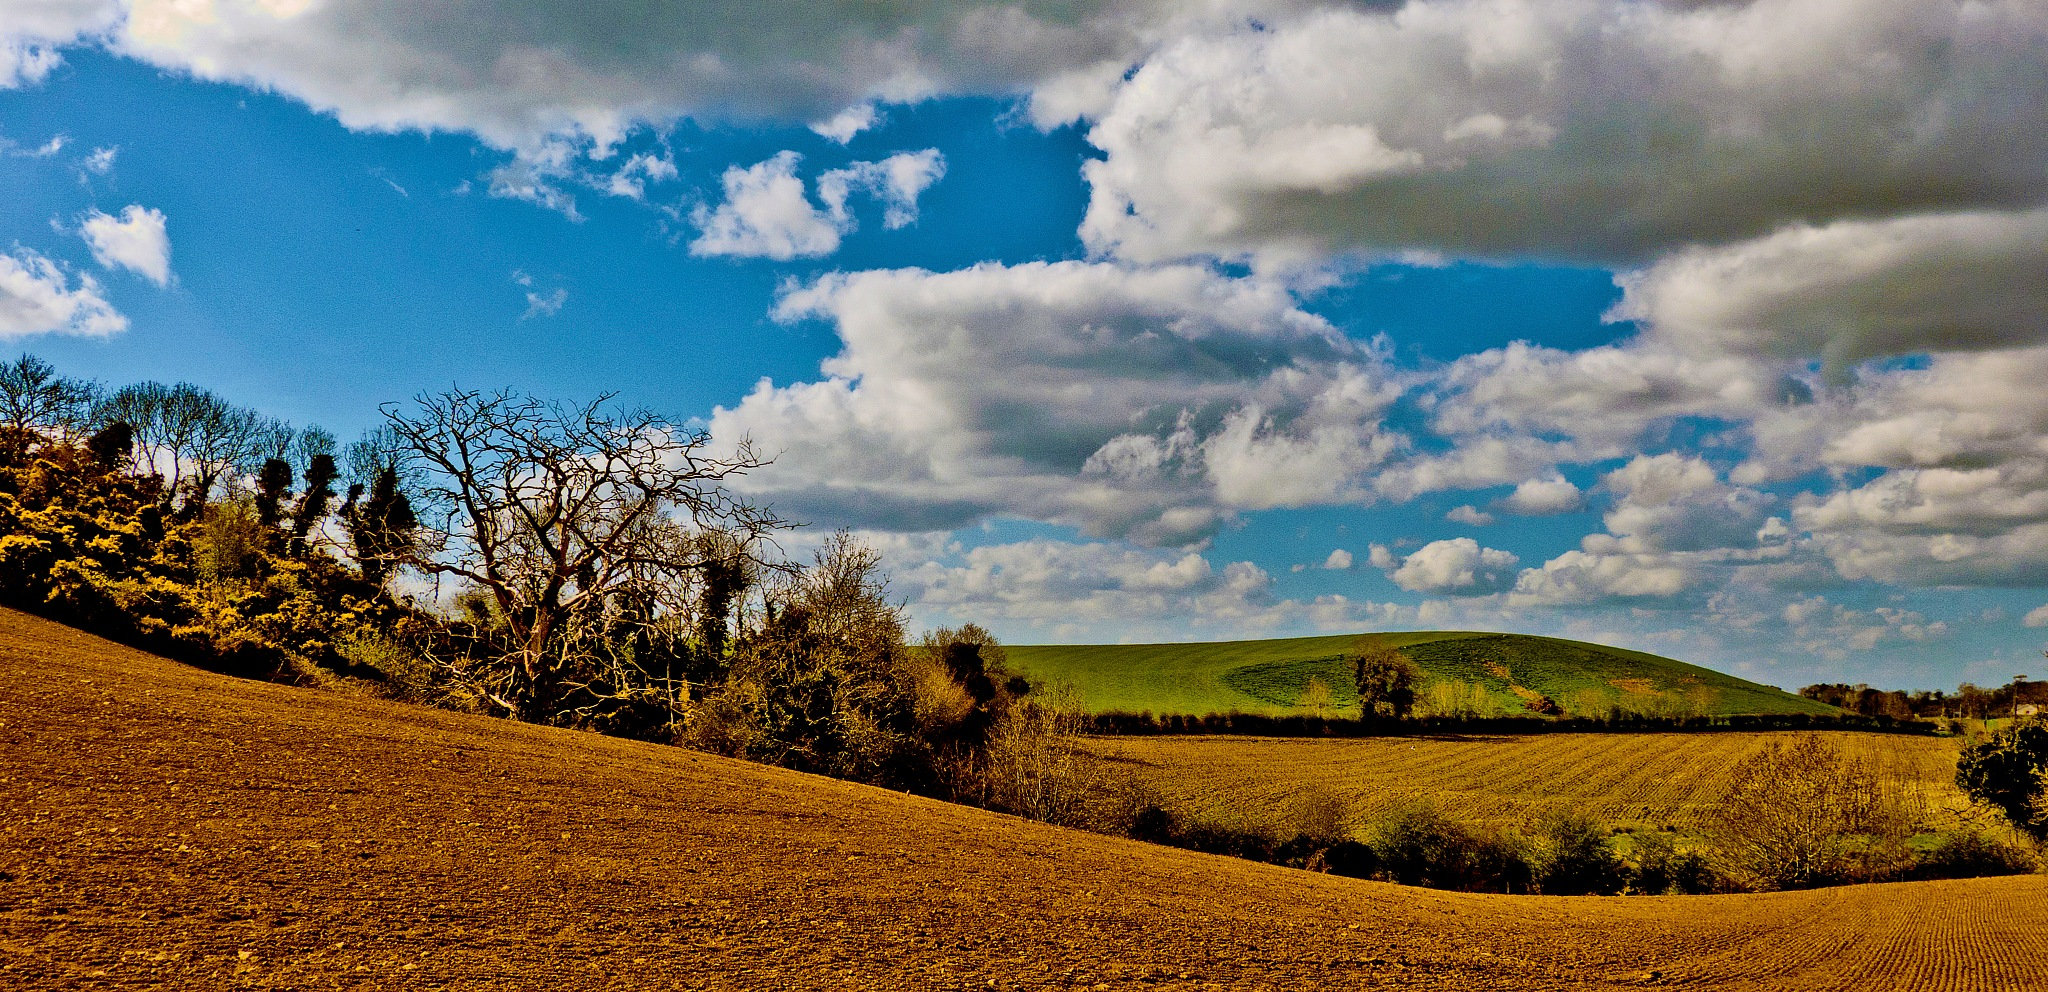 Co. Down Drumlins by PeterMChambers